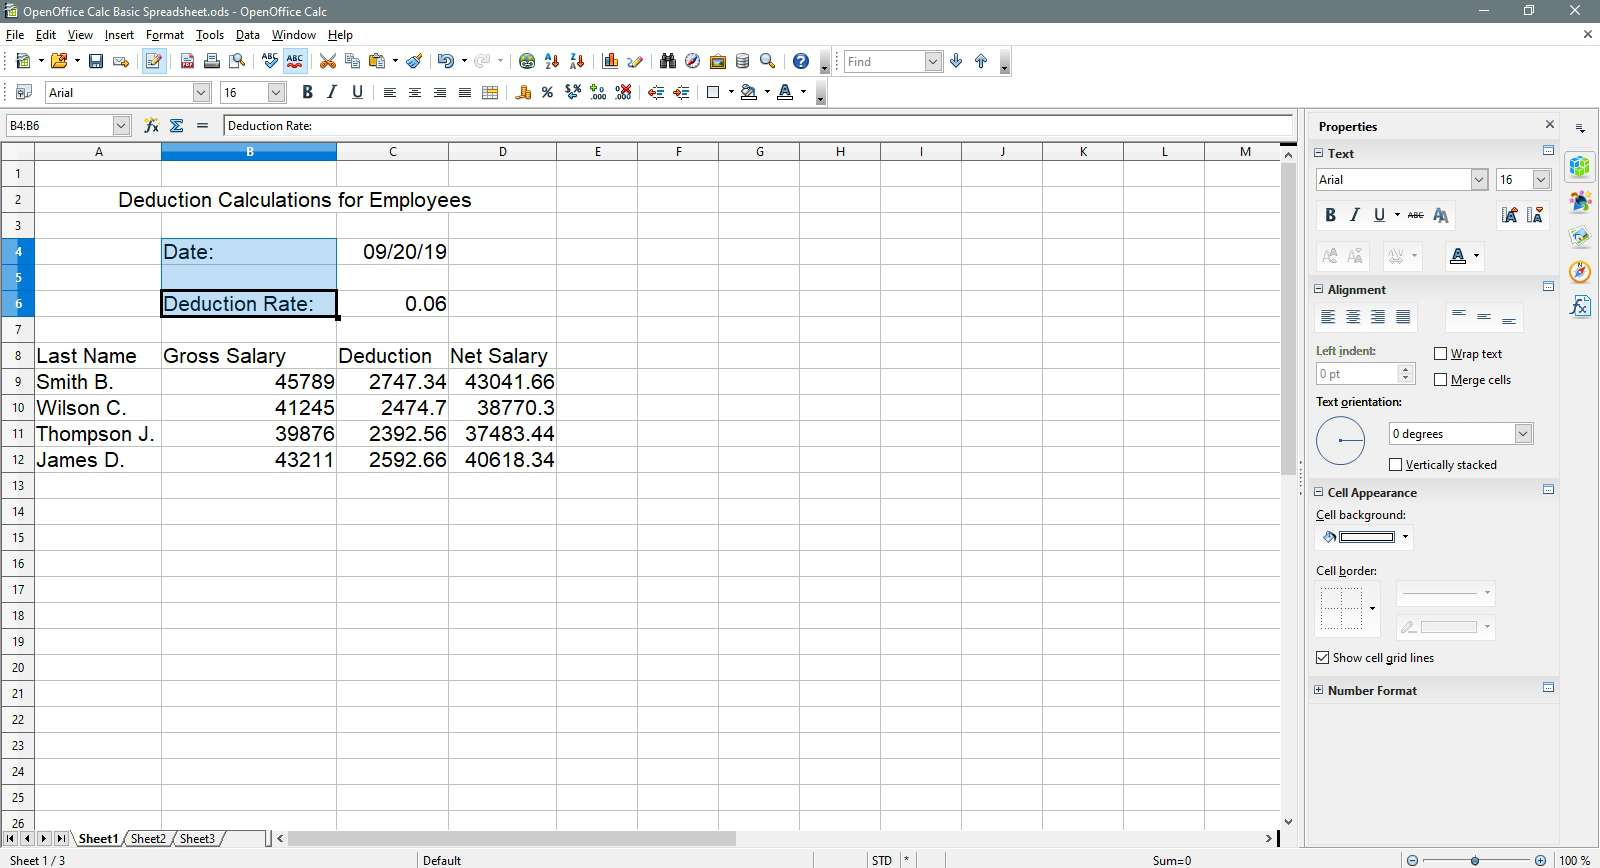 Date and deduction rate cells are selected in OpenOffice Calc.